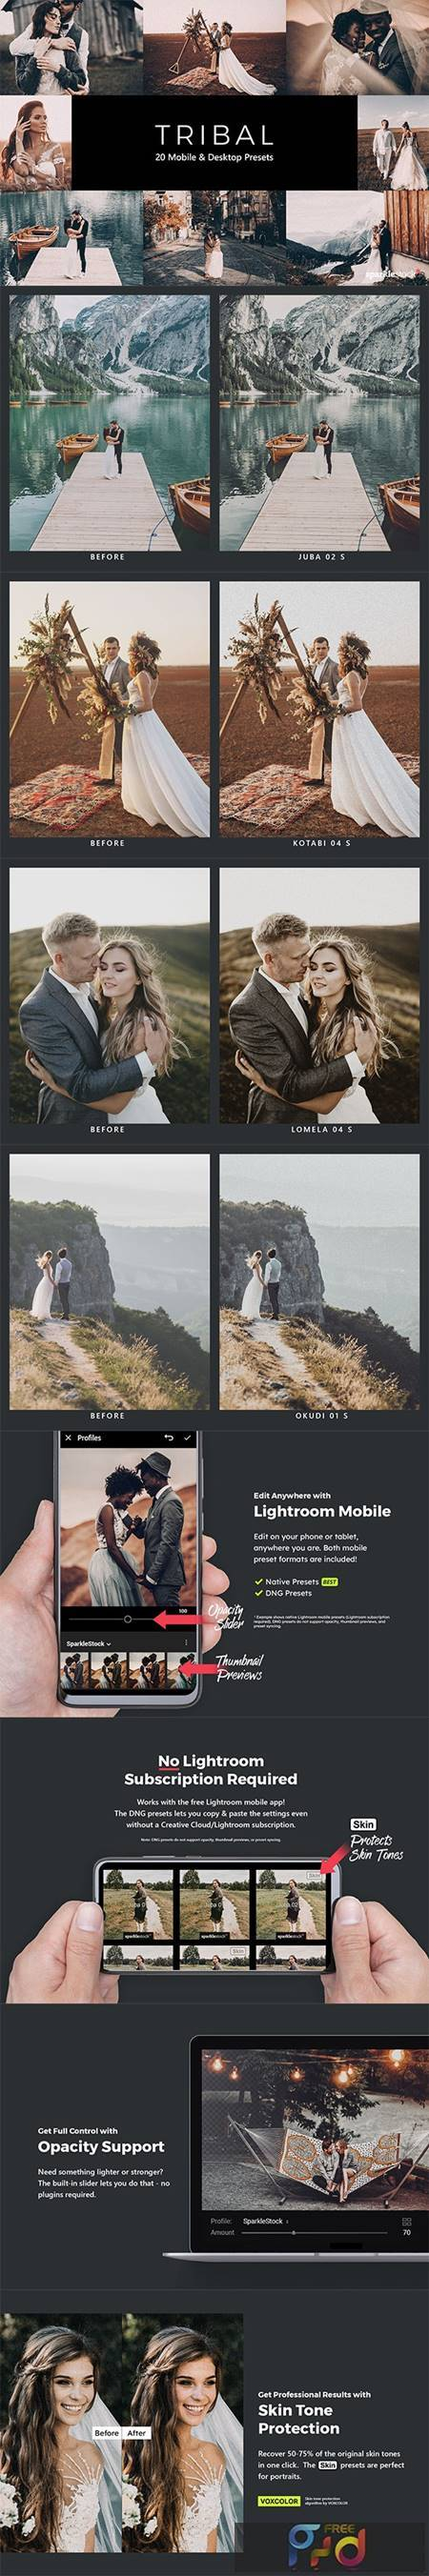 20 Tribal Lightroom Presets & LUTs 28876947 1